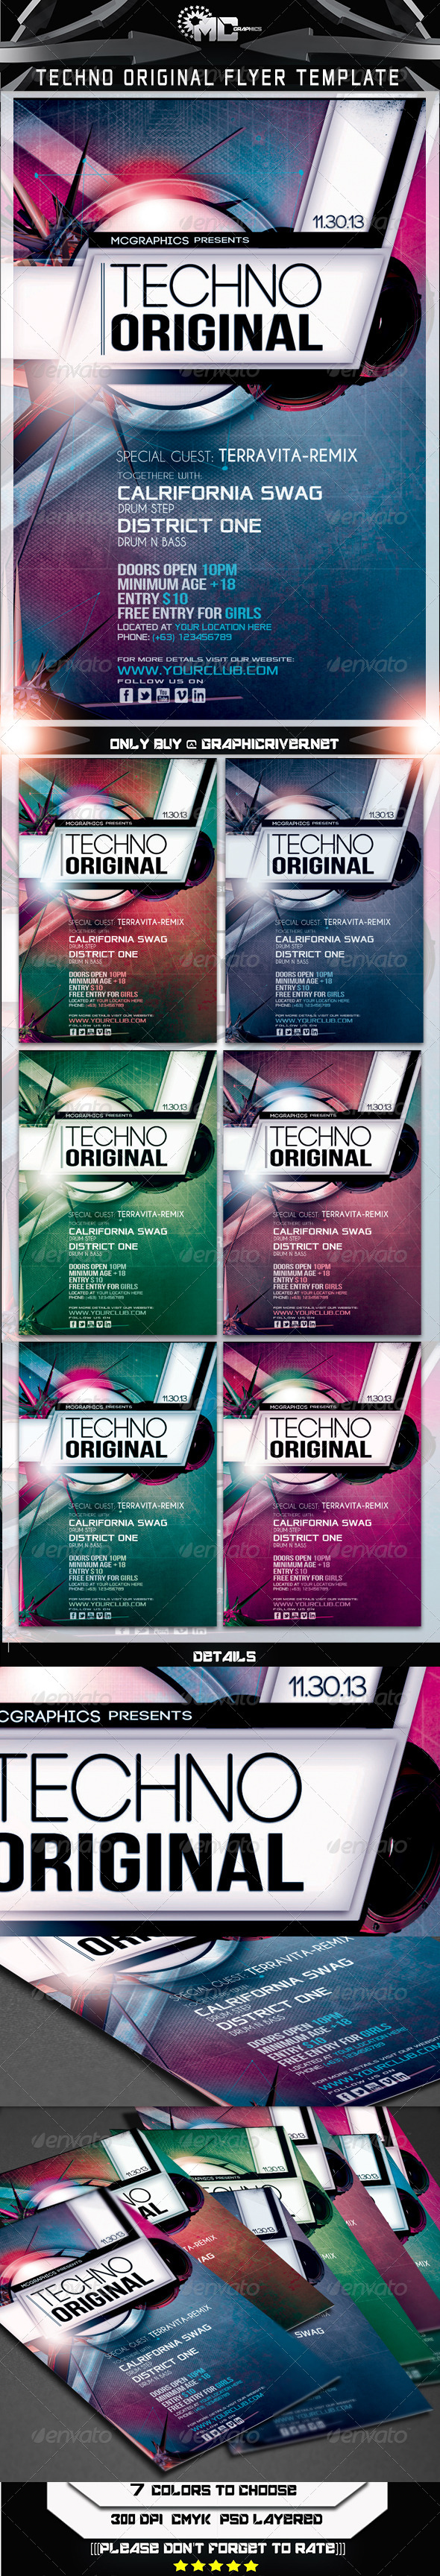 GraphicRiver Techno Original Flyer Template 5968078